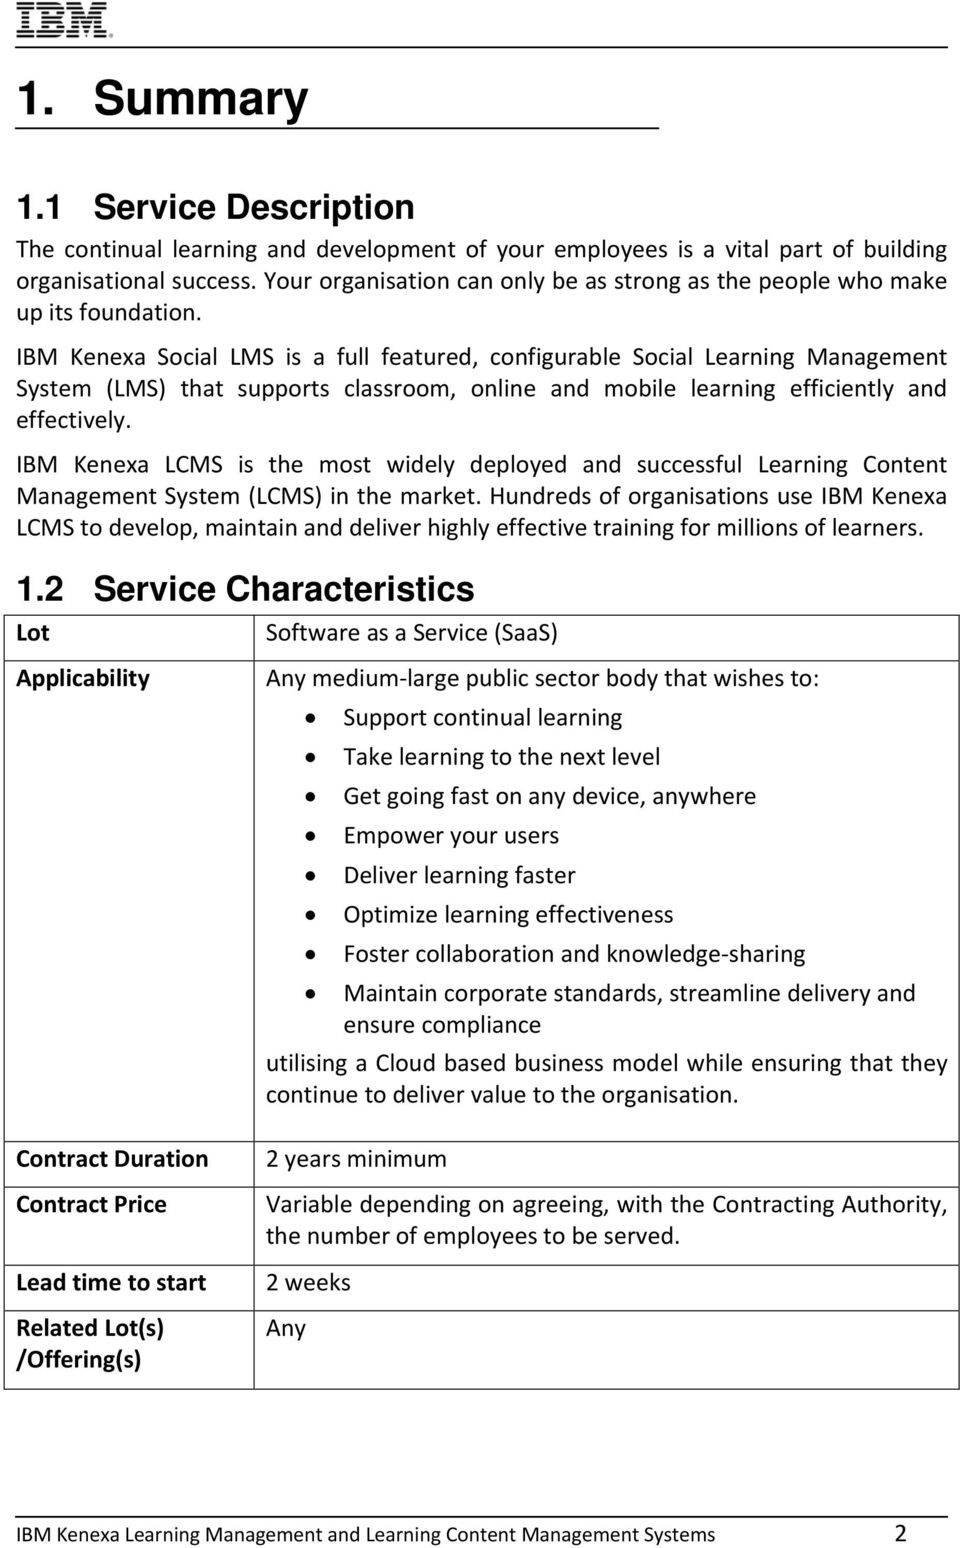 IBM Kenexa Social LMS is a full featured, configurable Social Learning Management System (LMS) that supports classroom, online and mobile learning efficiently and effectively.